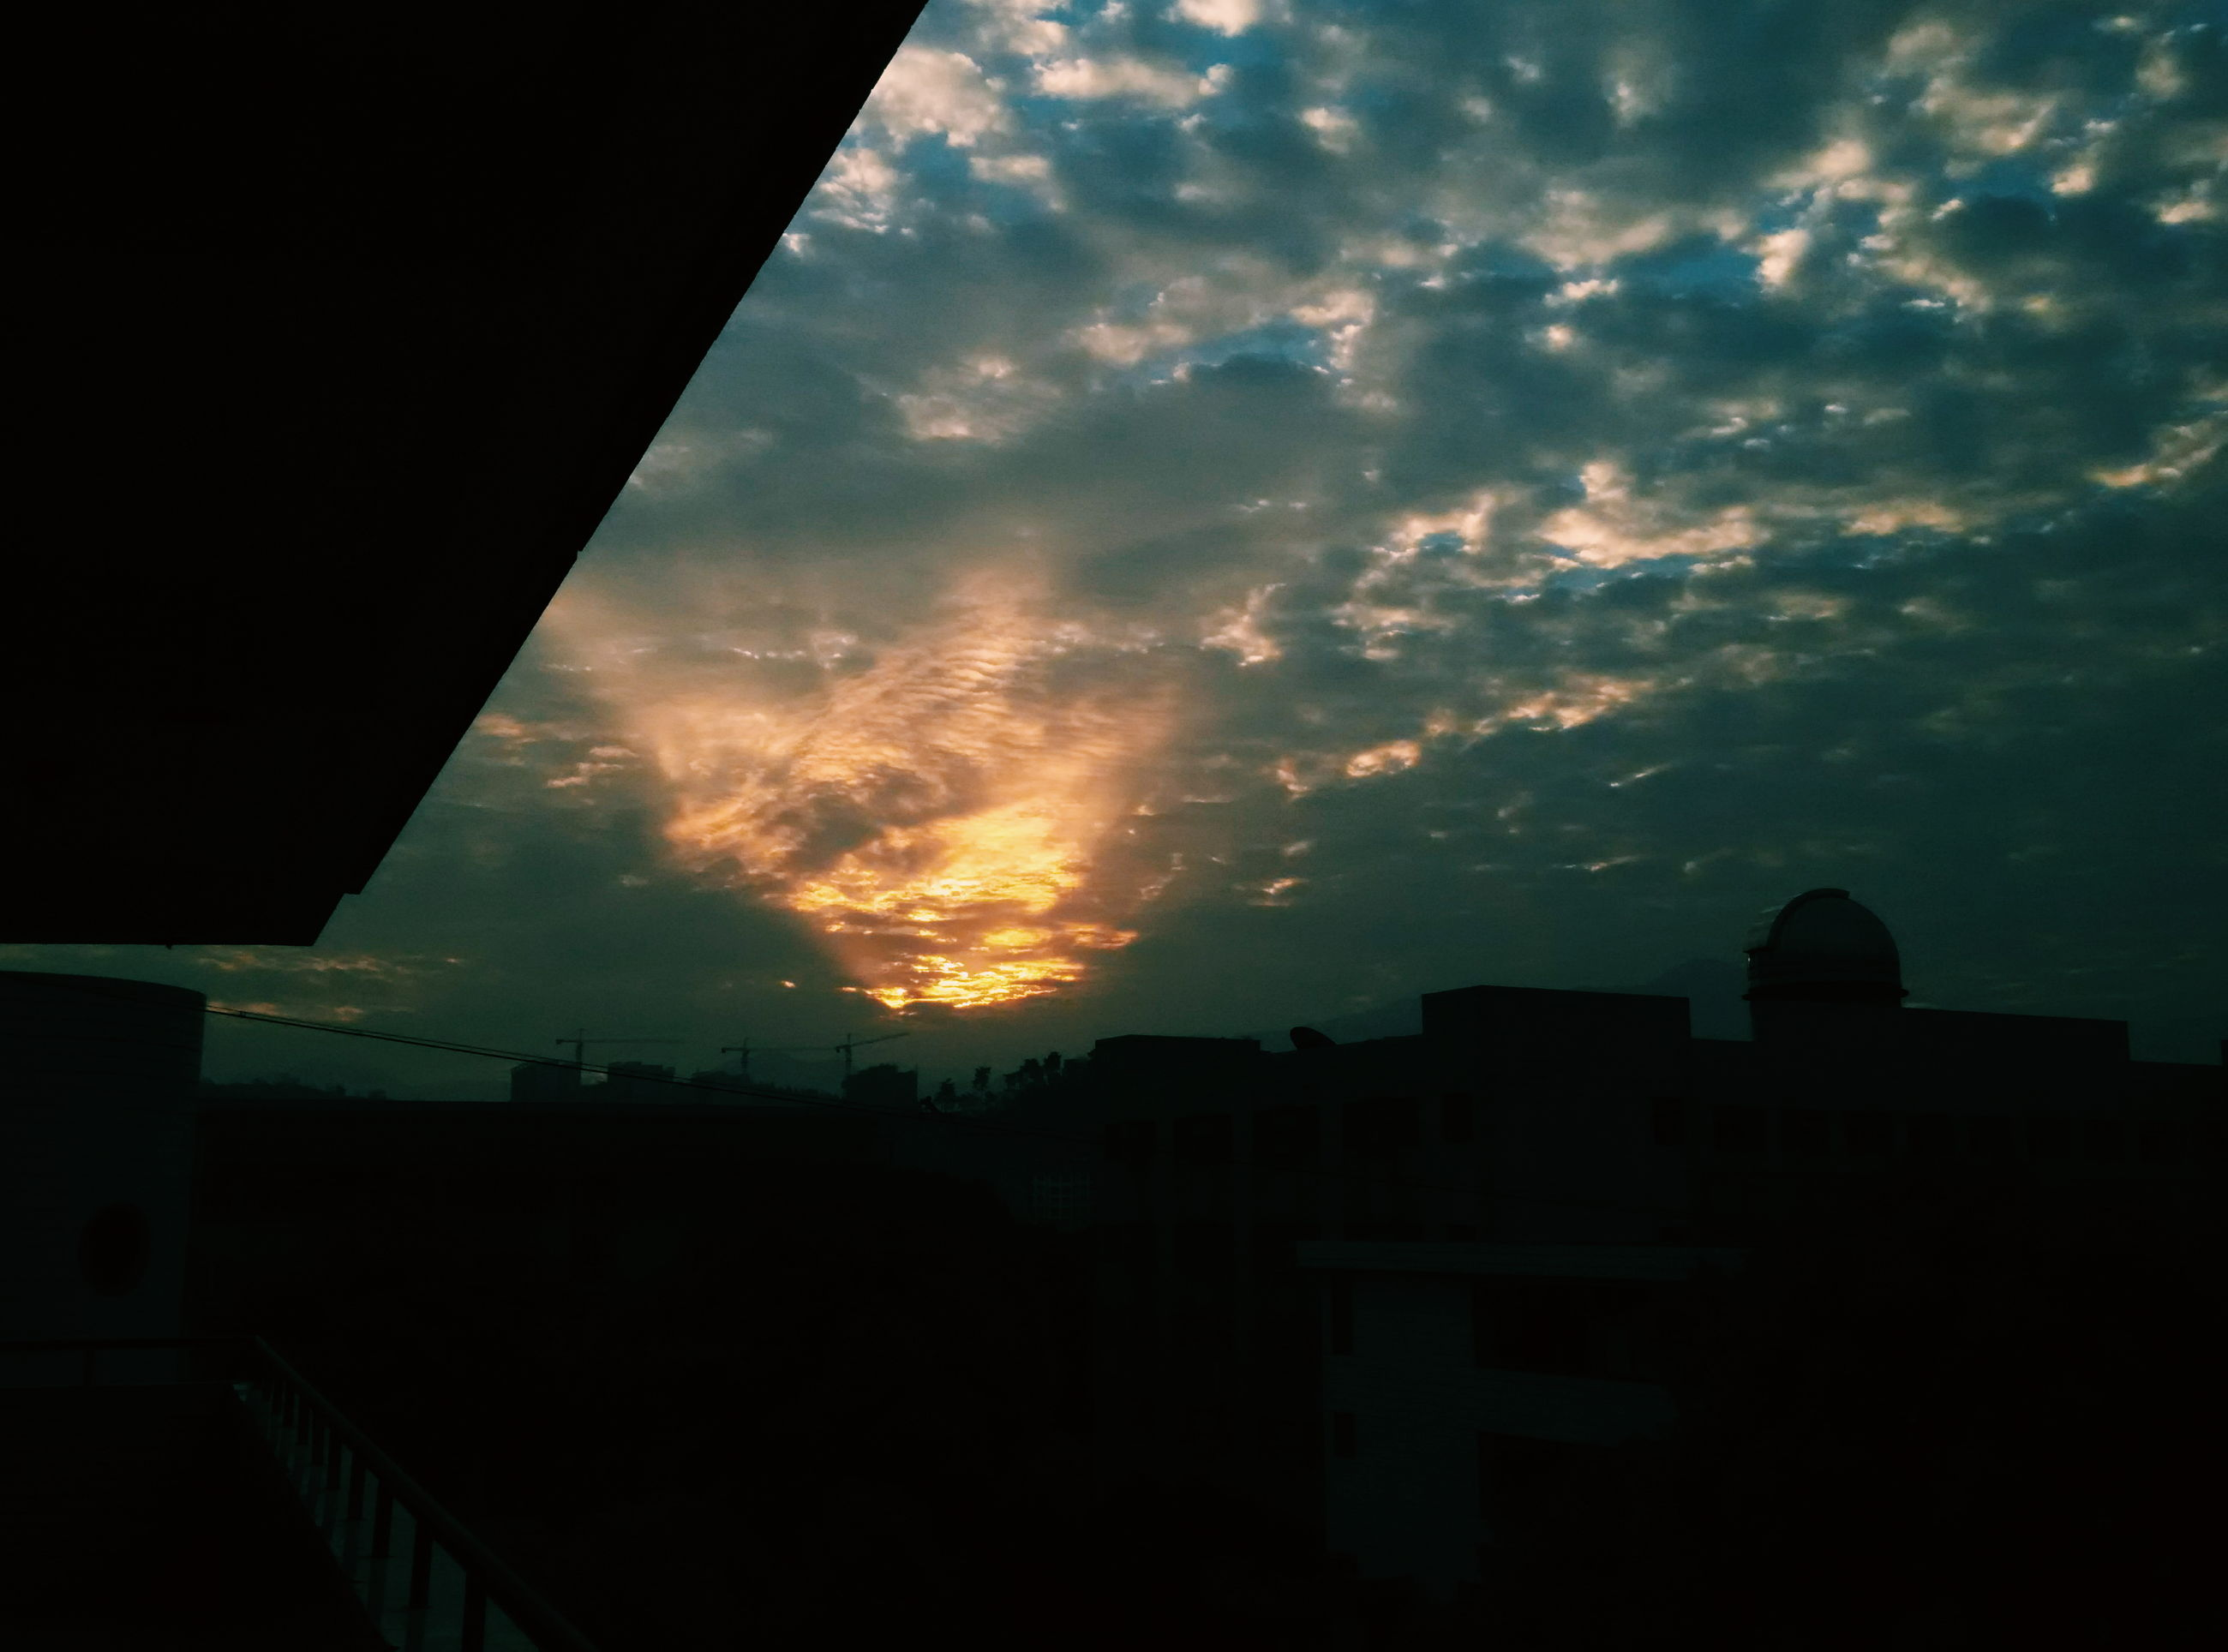 sunset, silhouette, architecture, built structure, building exterior, sky, cloud - sky, orange color, dark, low angle view, building, house, residential structure, cloud, residential building, city, cloudy, outdoors, nature, dramatic sky